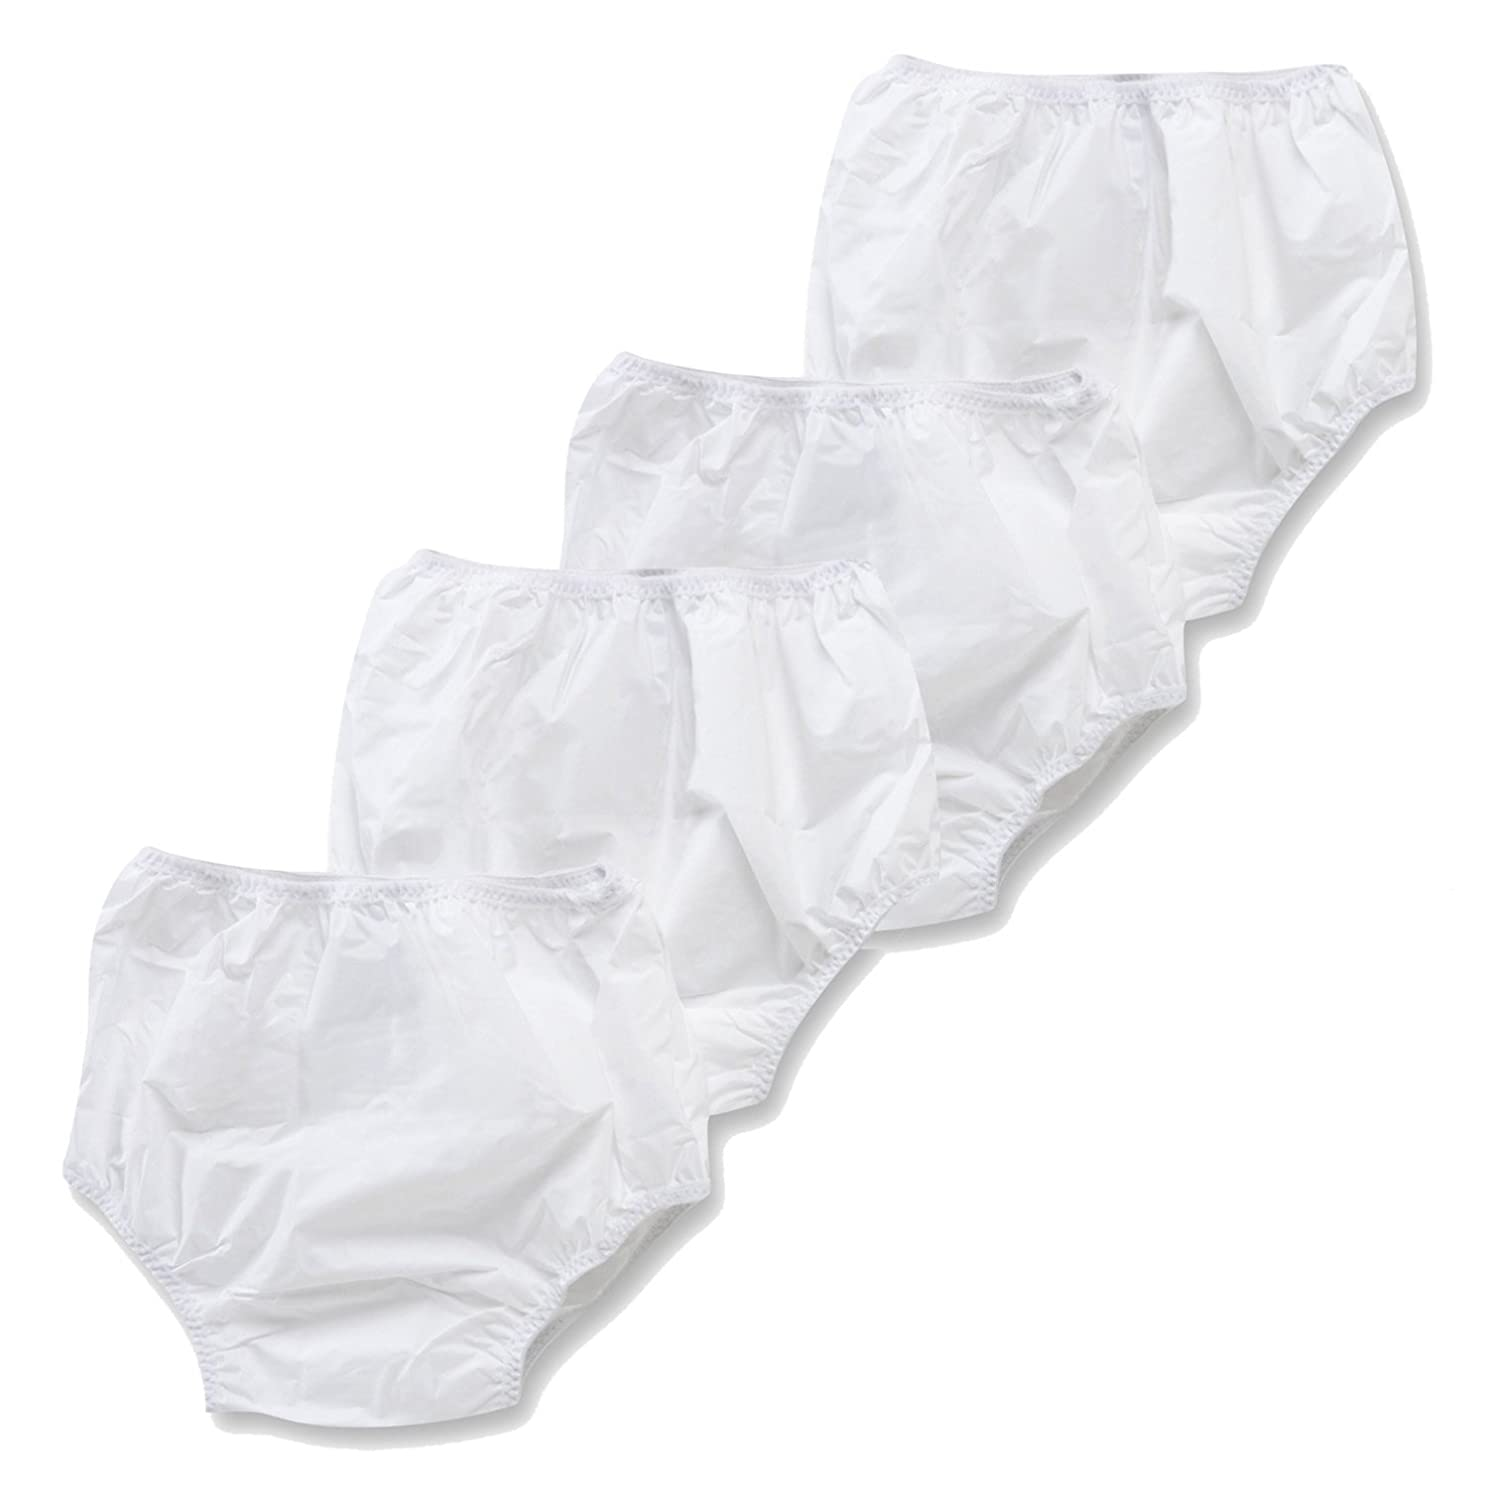 NEW Gerber Plastic Pants 4 Pairs 2T 3T FREE SHIPPING